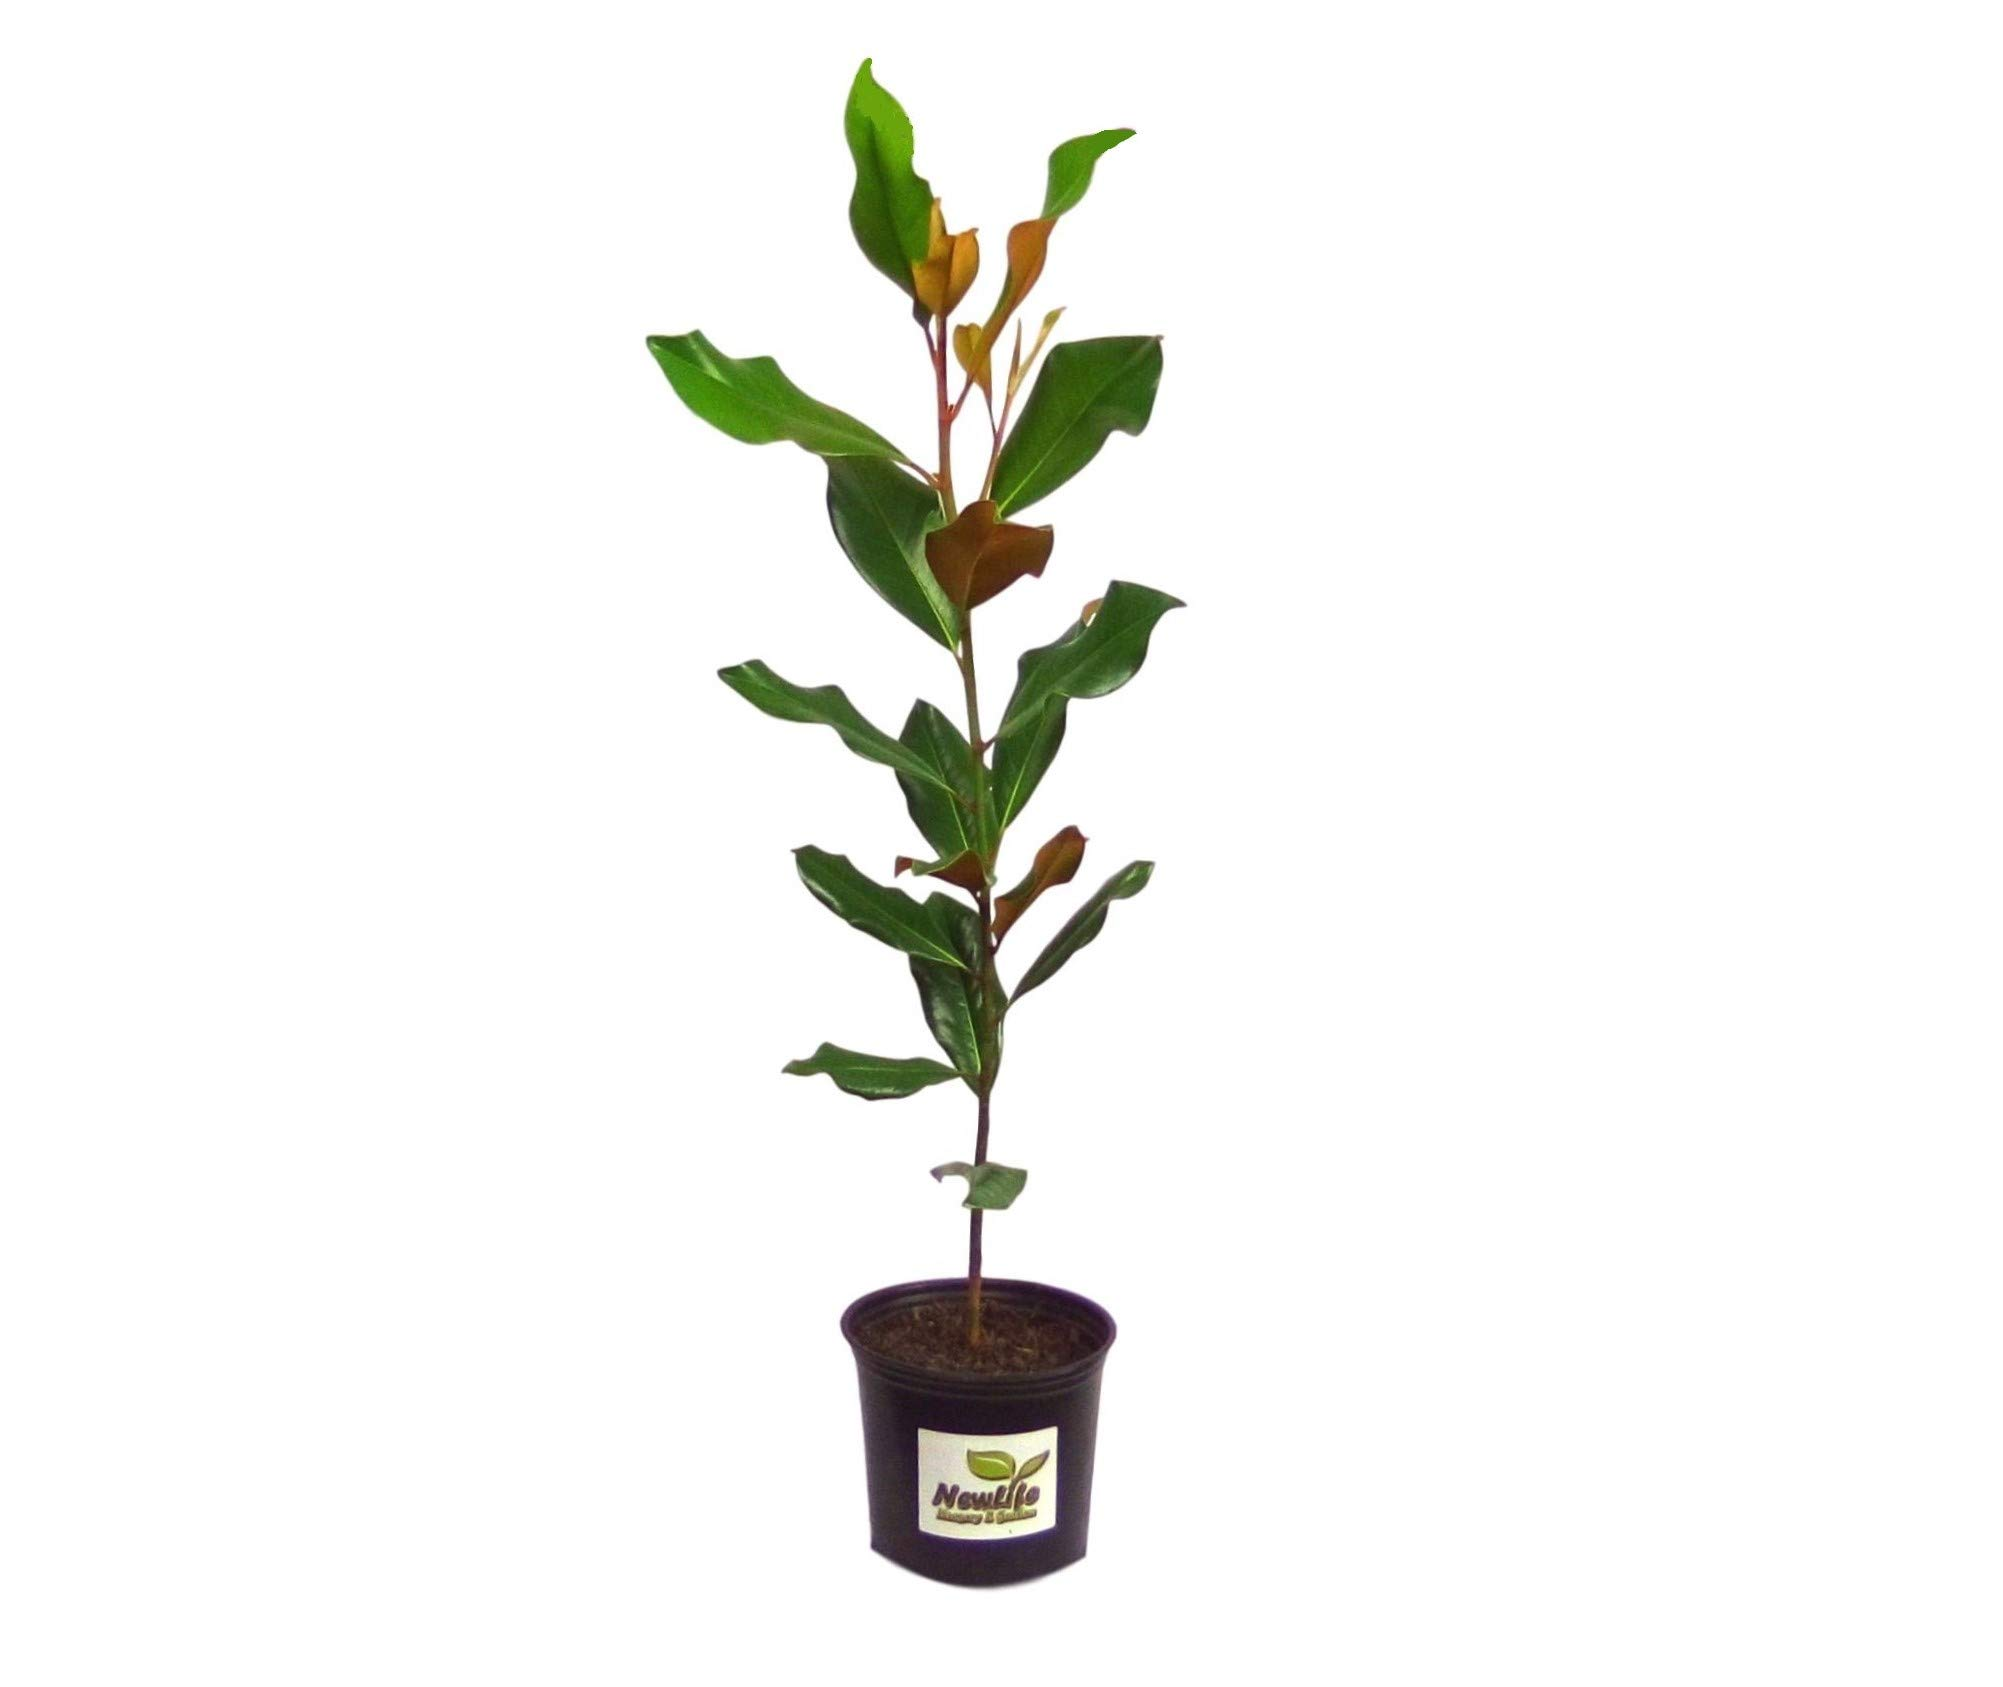 New Life Nursery & Garden- - Brackens Brown Beauty- - Southern Magnolia Tree'', Full Gallon Pot by New Life Nursery & Garden